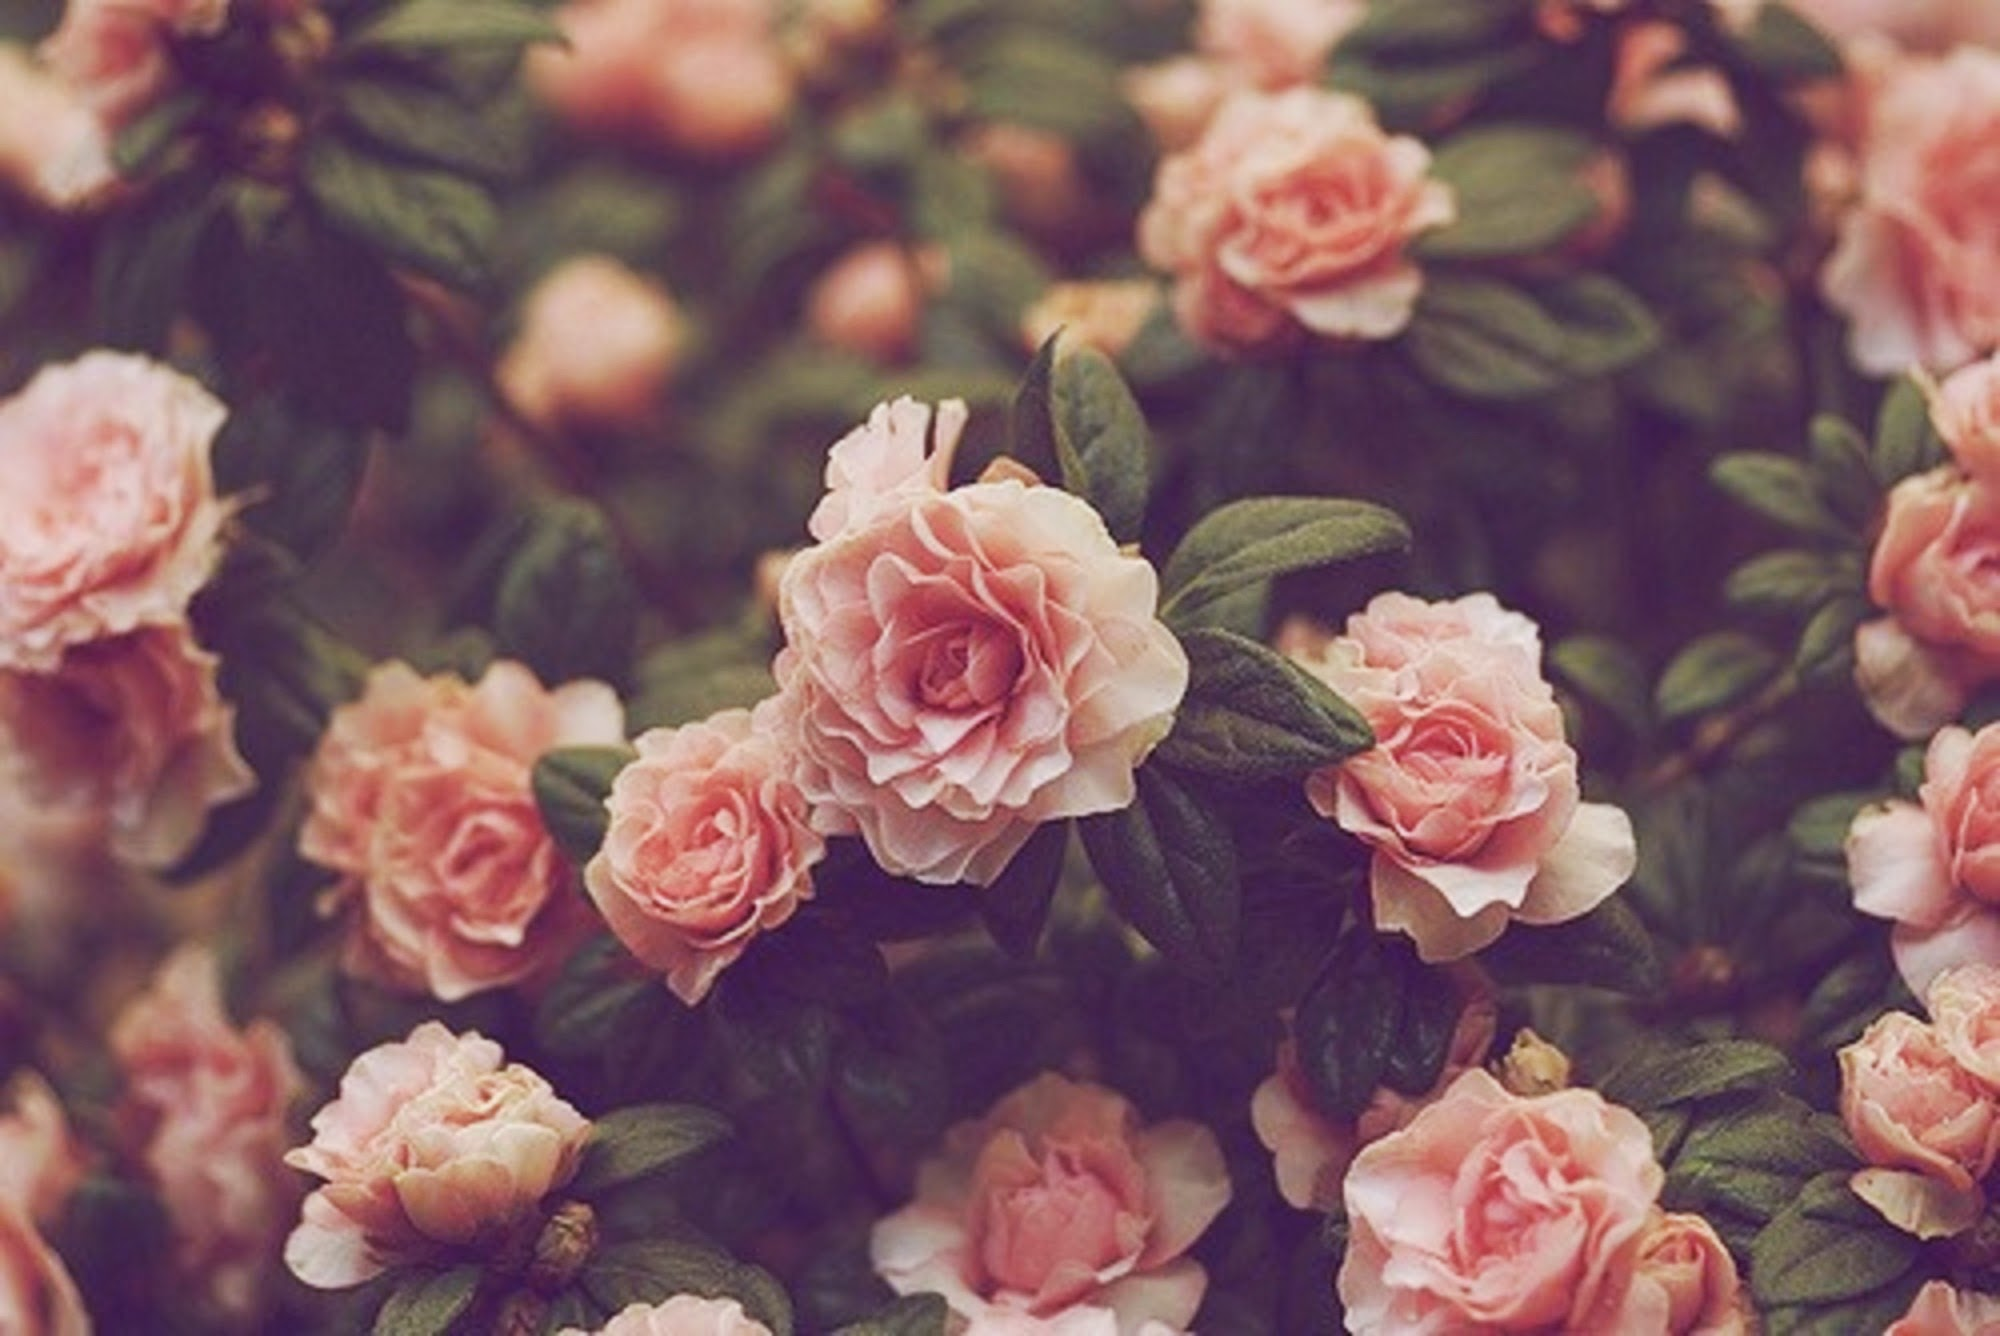 Vintage Flower Wallpapers Tumblr 34